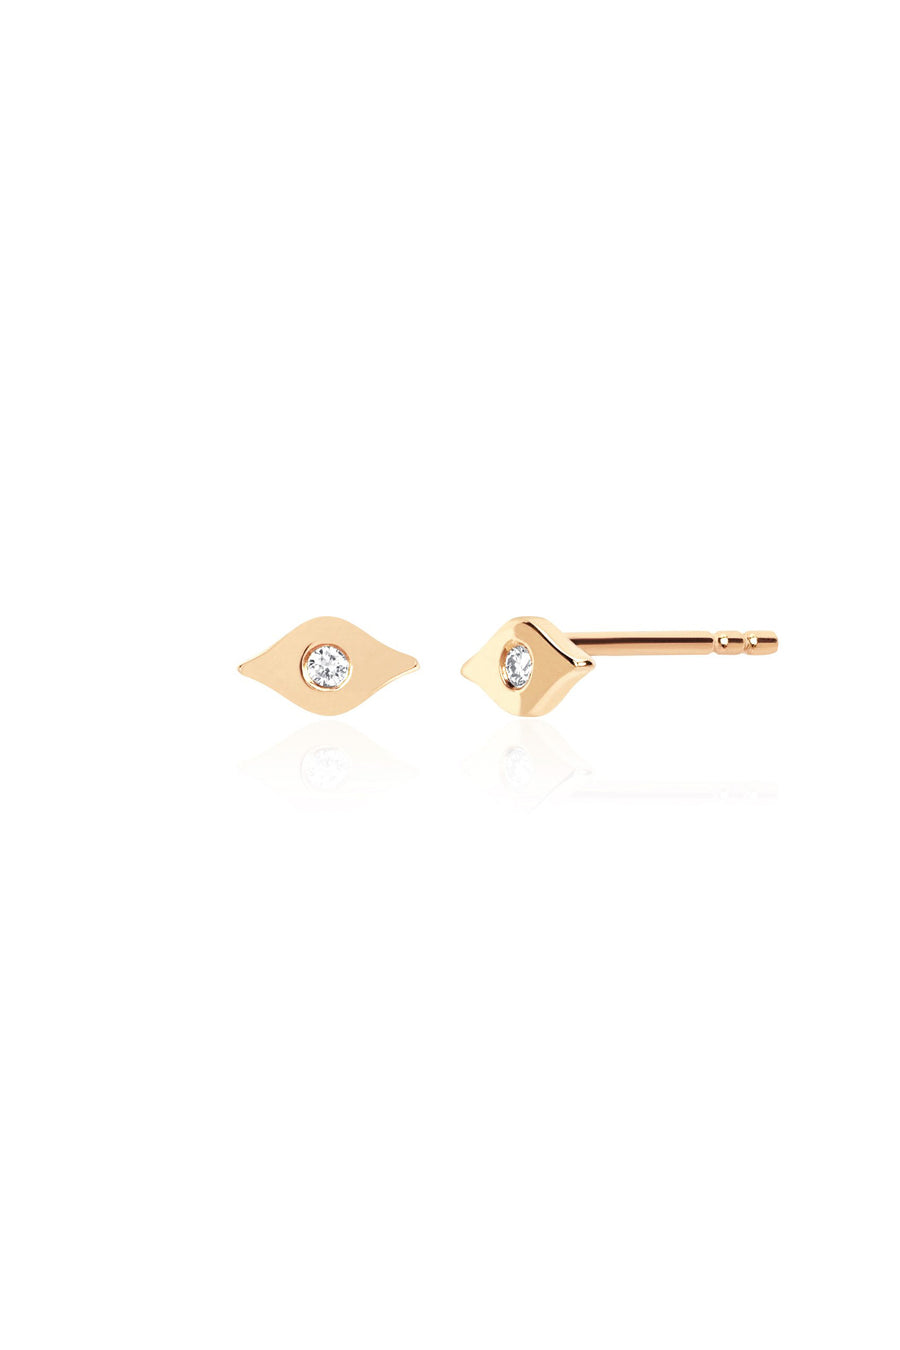 Gold & Diamond Evil Eye Stud Earring - Pavilion